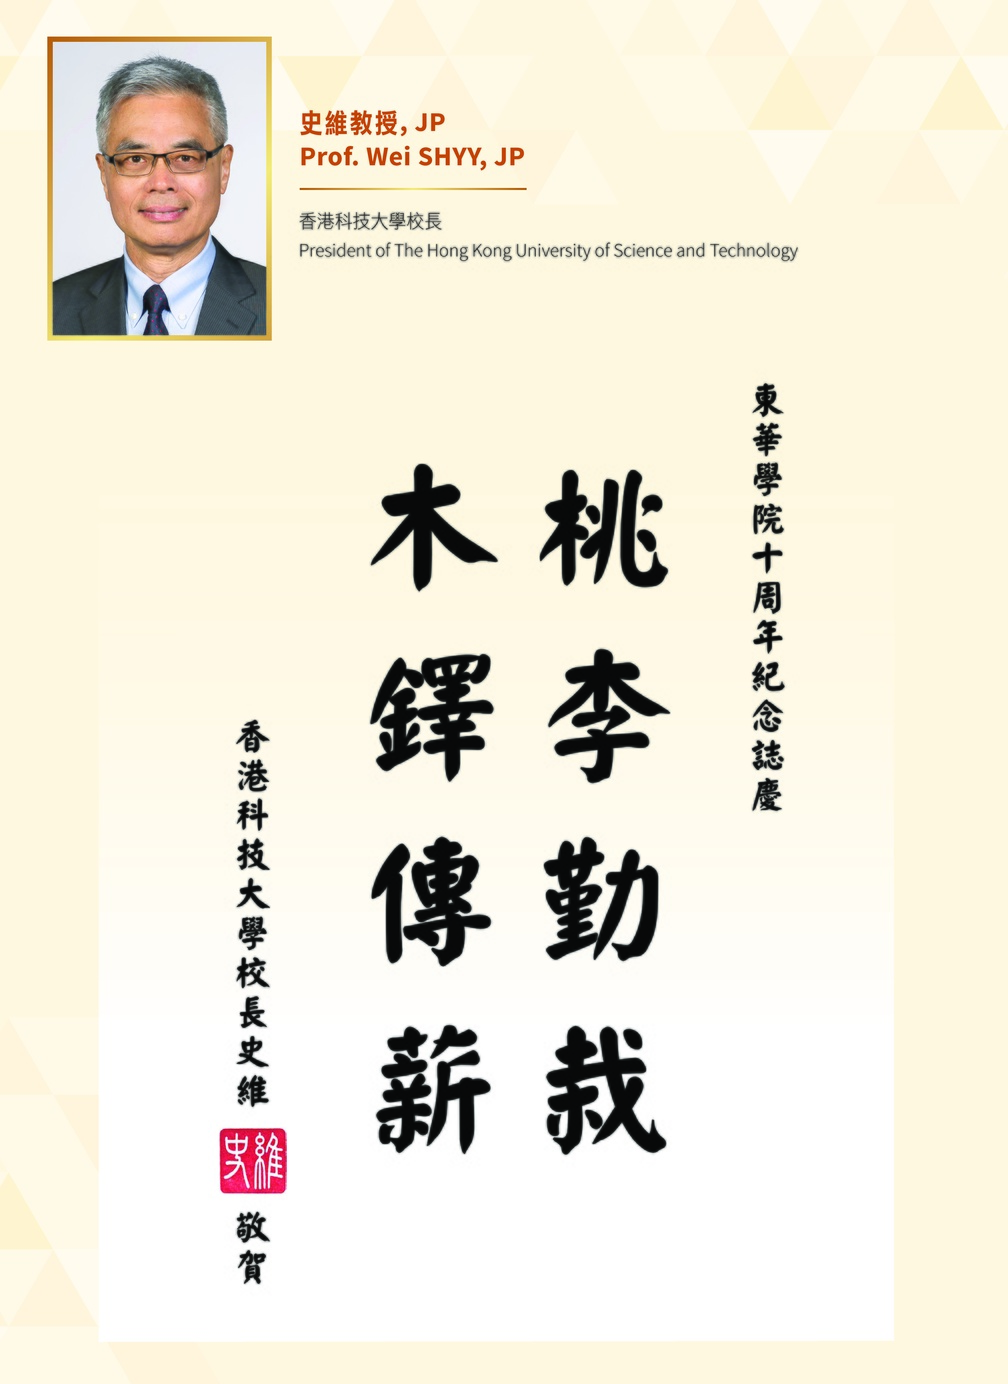 President of The Hong Kong University of Science and Technology